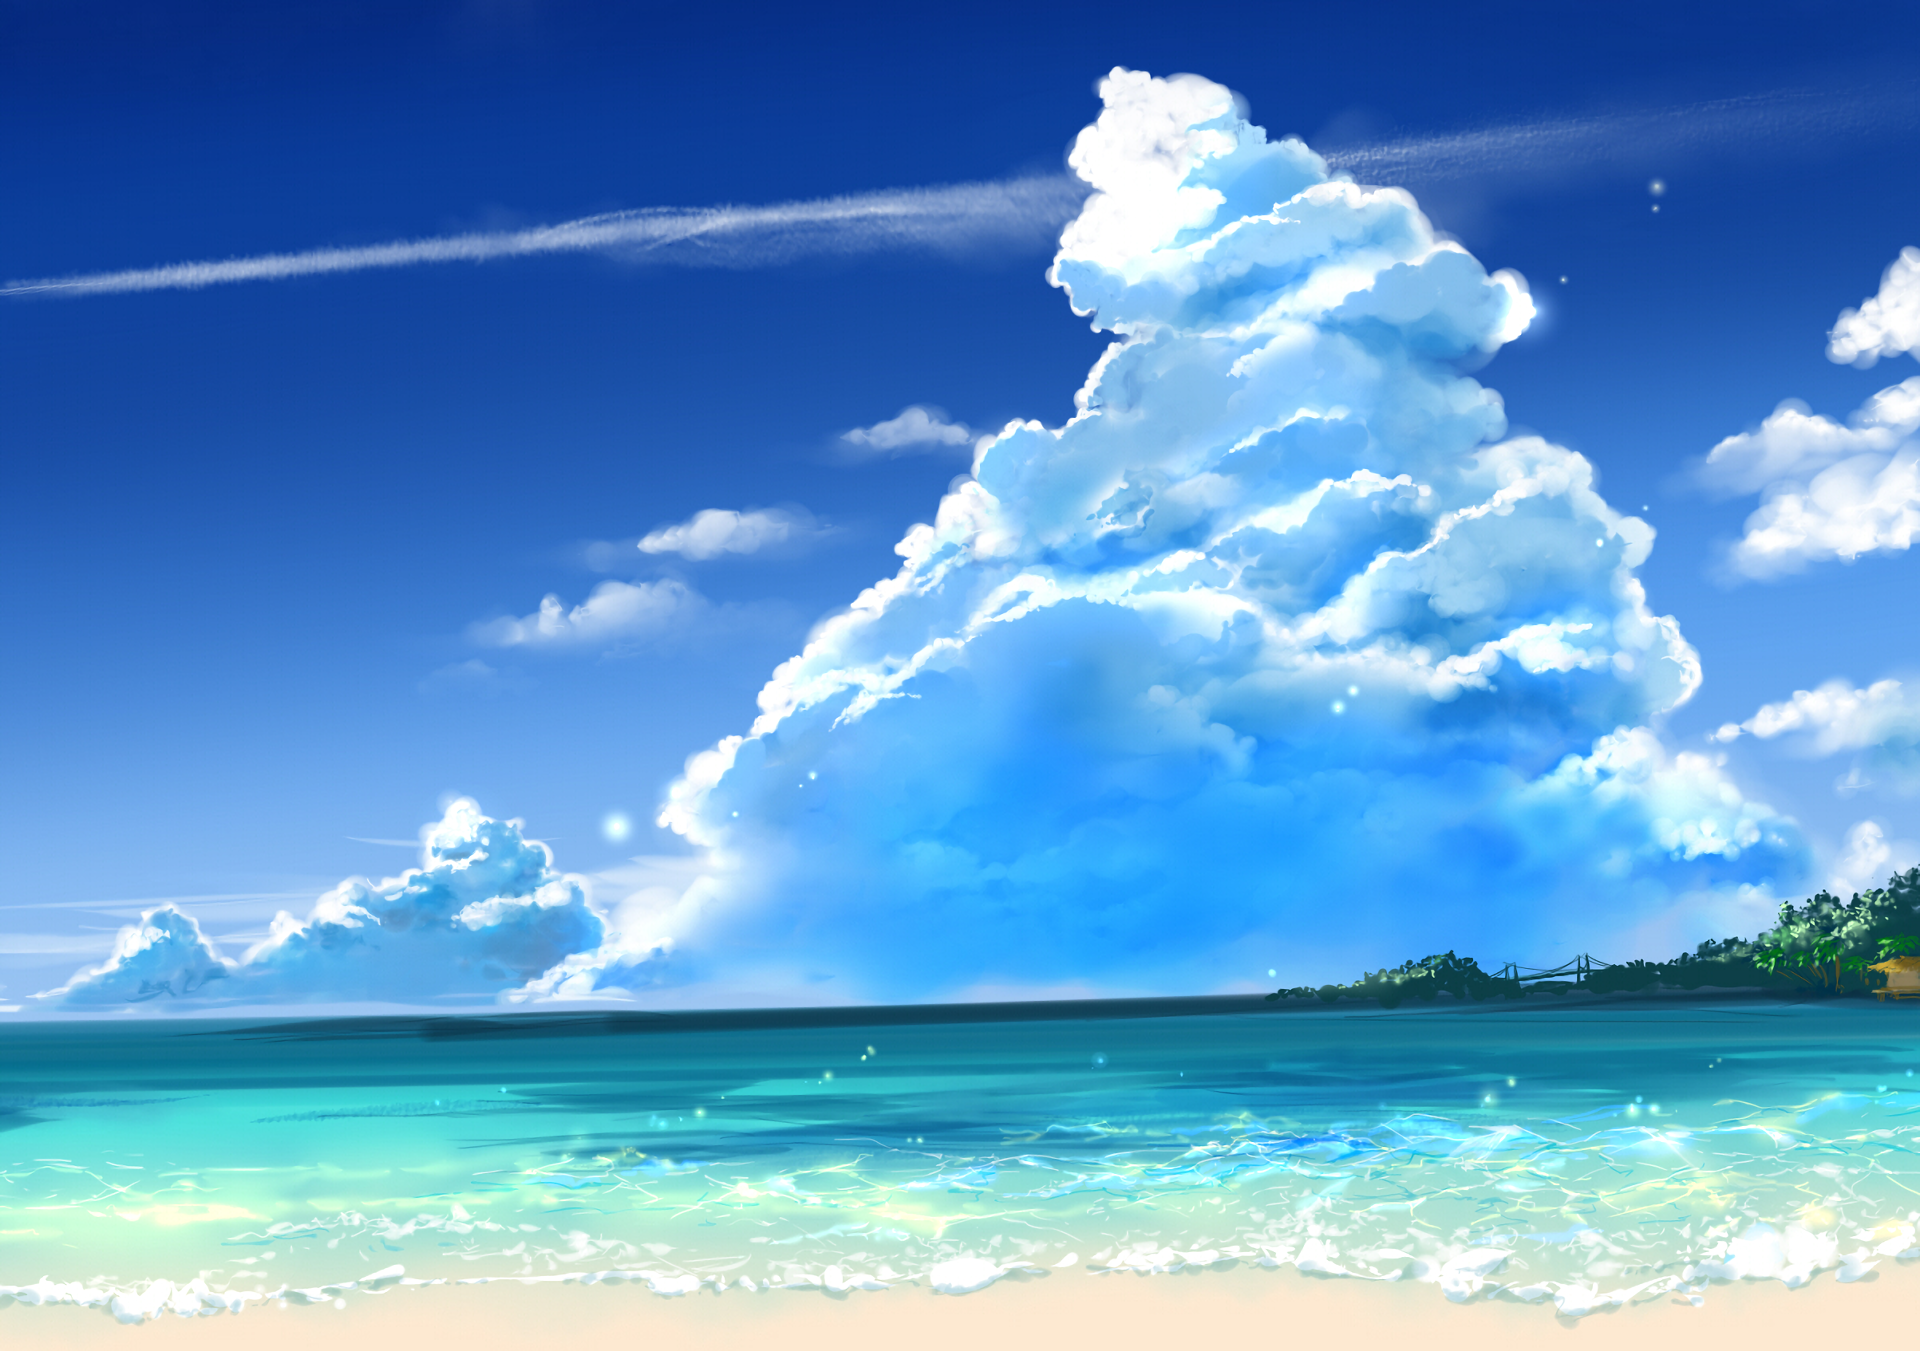 Wallpapers ID:865756